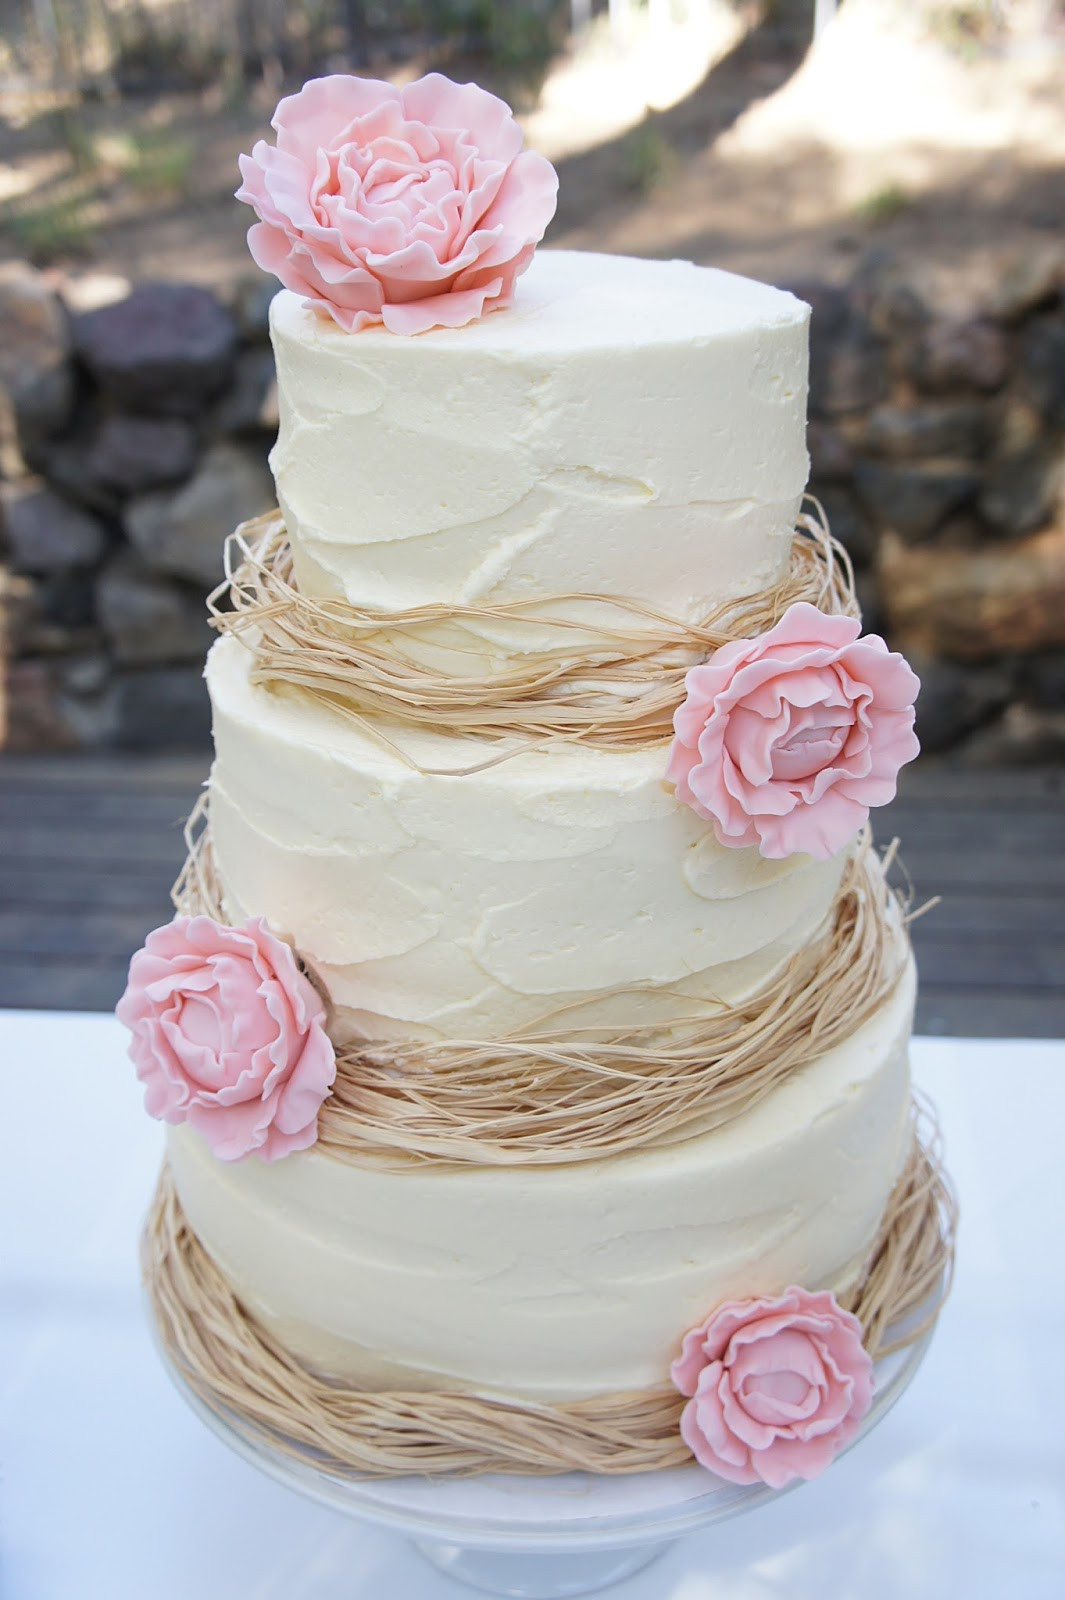 Wedding Cakes Pictures Pinterest  Half Baked Co Blush and Ivory Wedding Dessert Table